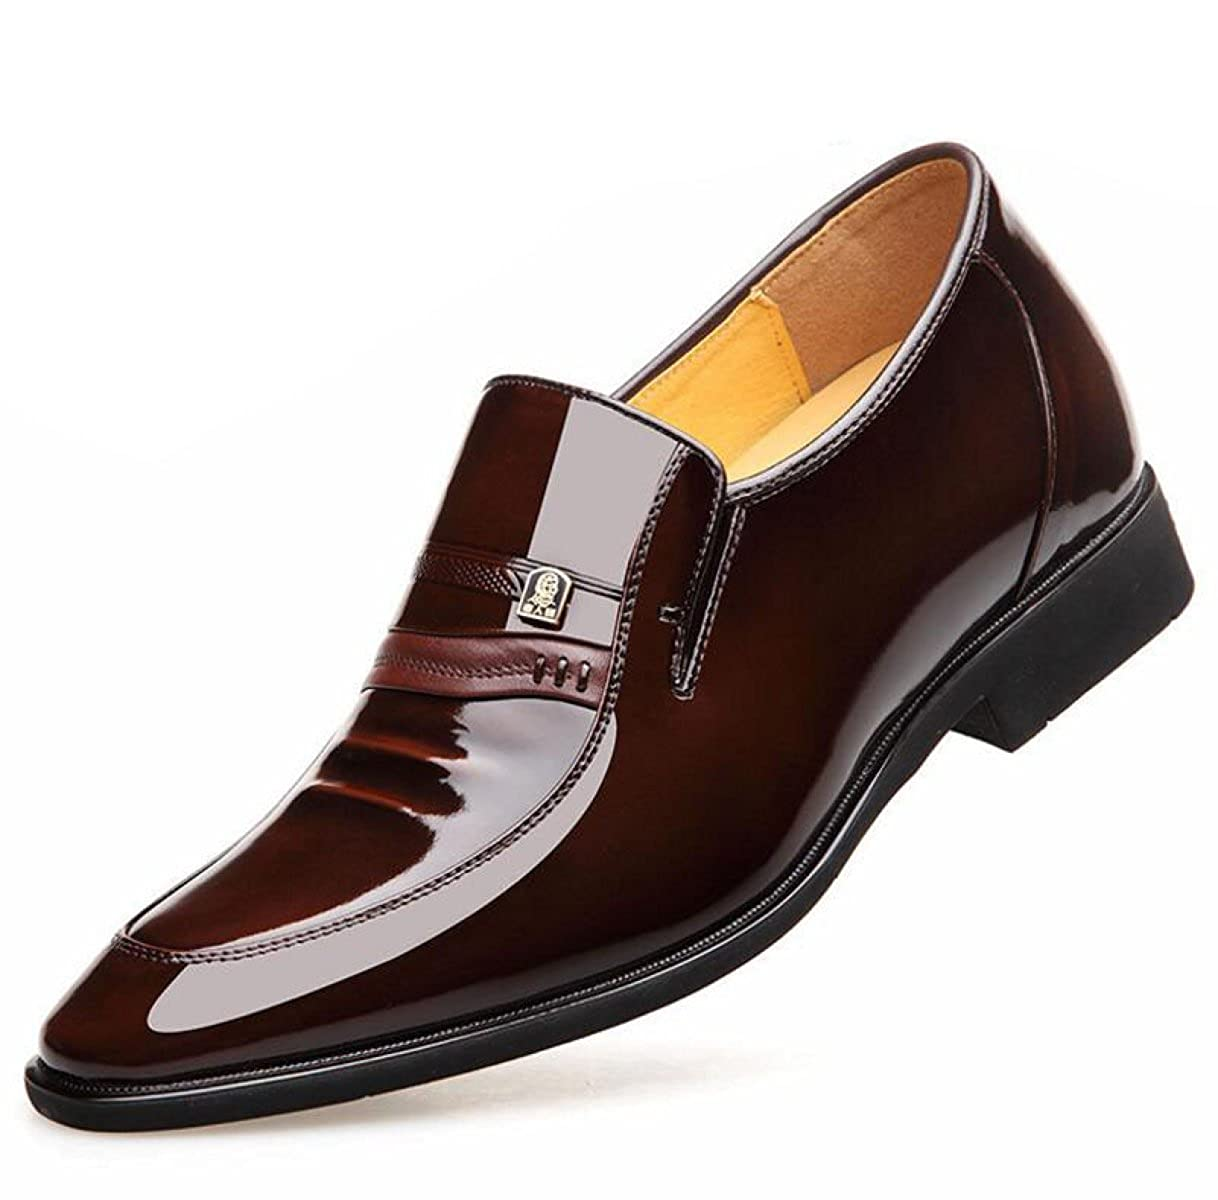 GTYMFH Herrenschuhe Herrenschuhe Herrenschuhe Leder Business